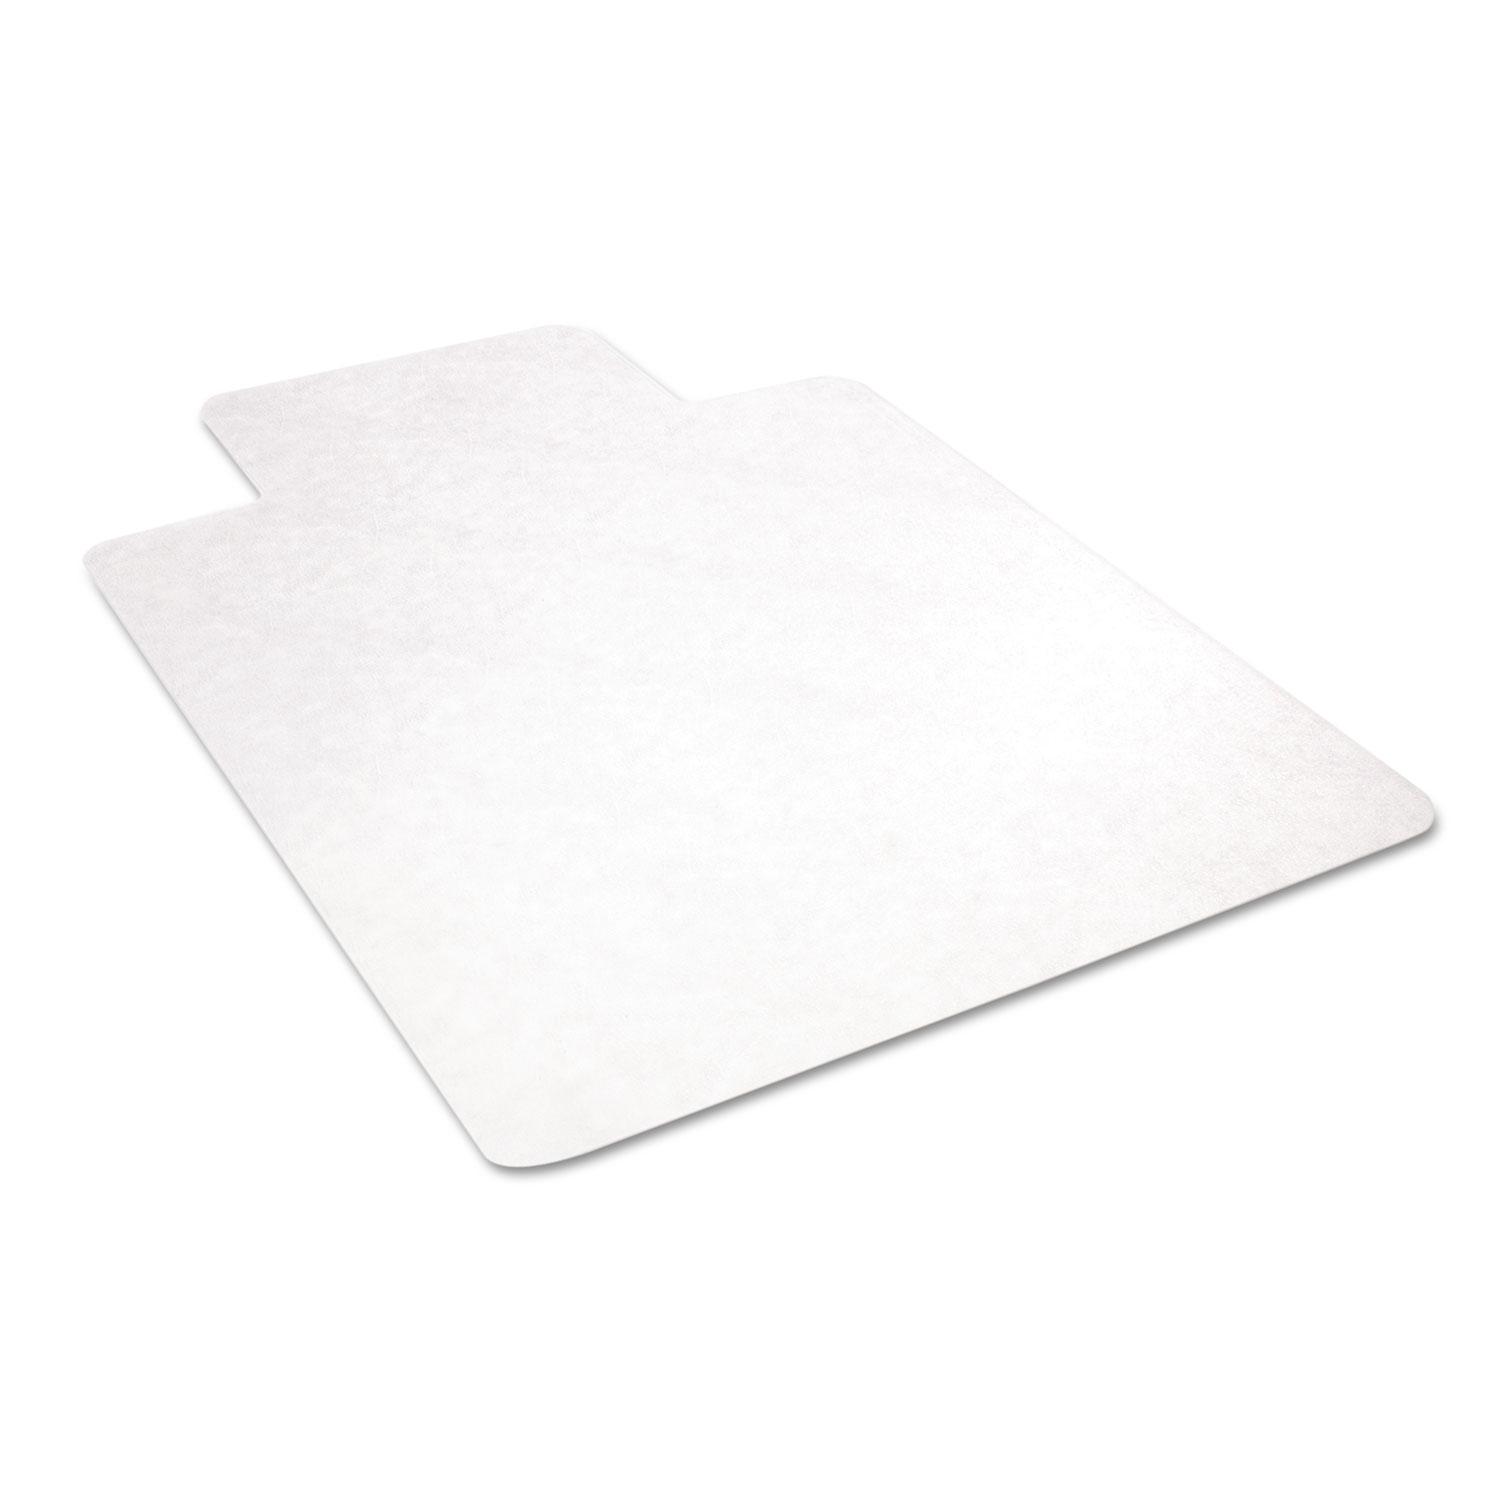 clear chair mat rent covers cheap economat anytime use for hard floor by deflecto